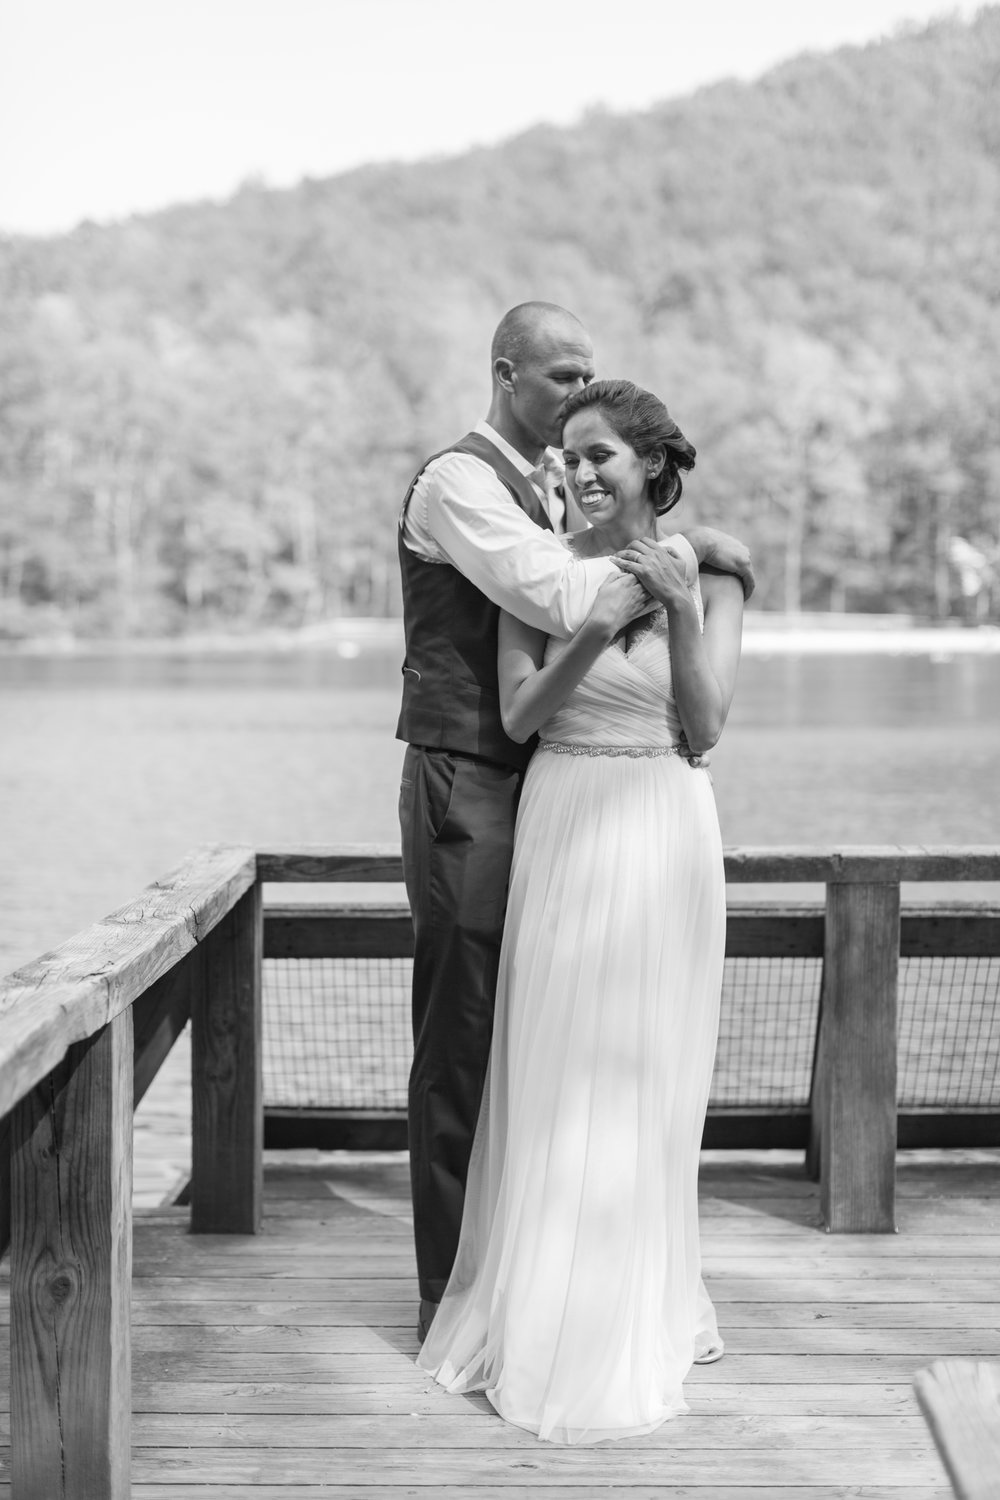 Sherando Lake Wedding || Intimate elopement style wedding in Central Virginia || Lynchburg, Virginia Wedding Photographer || www.ashleyeiban.com